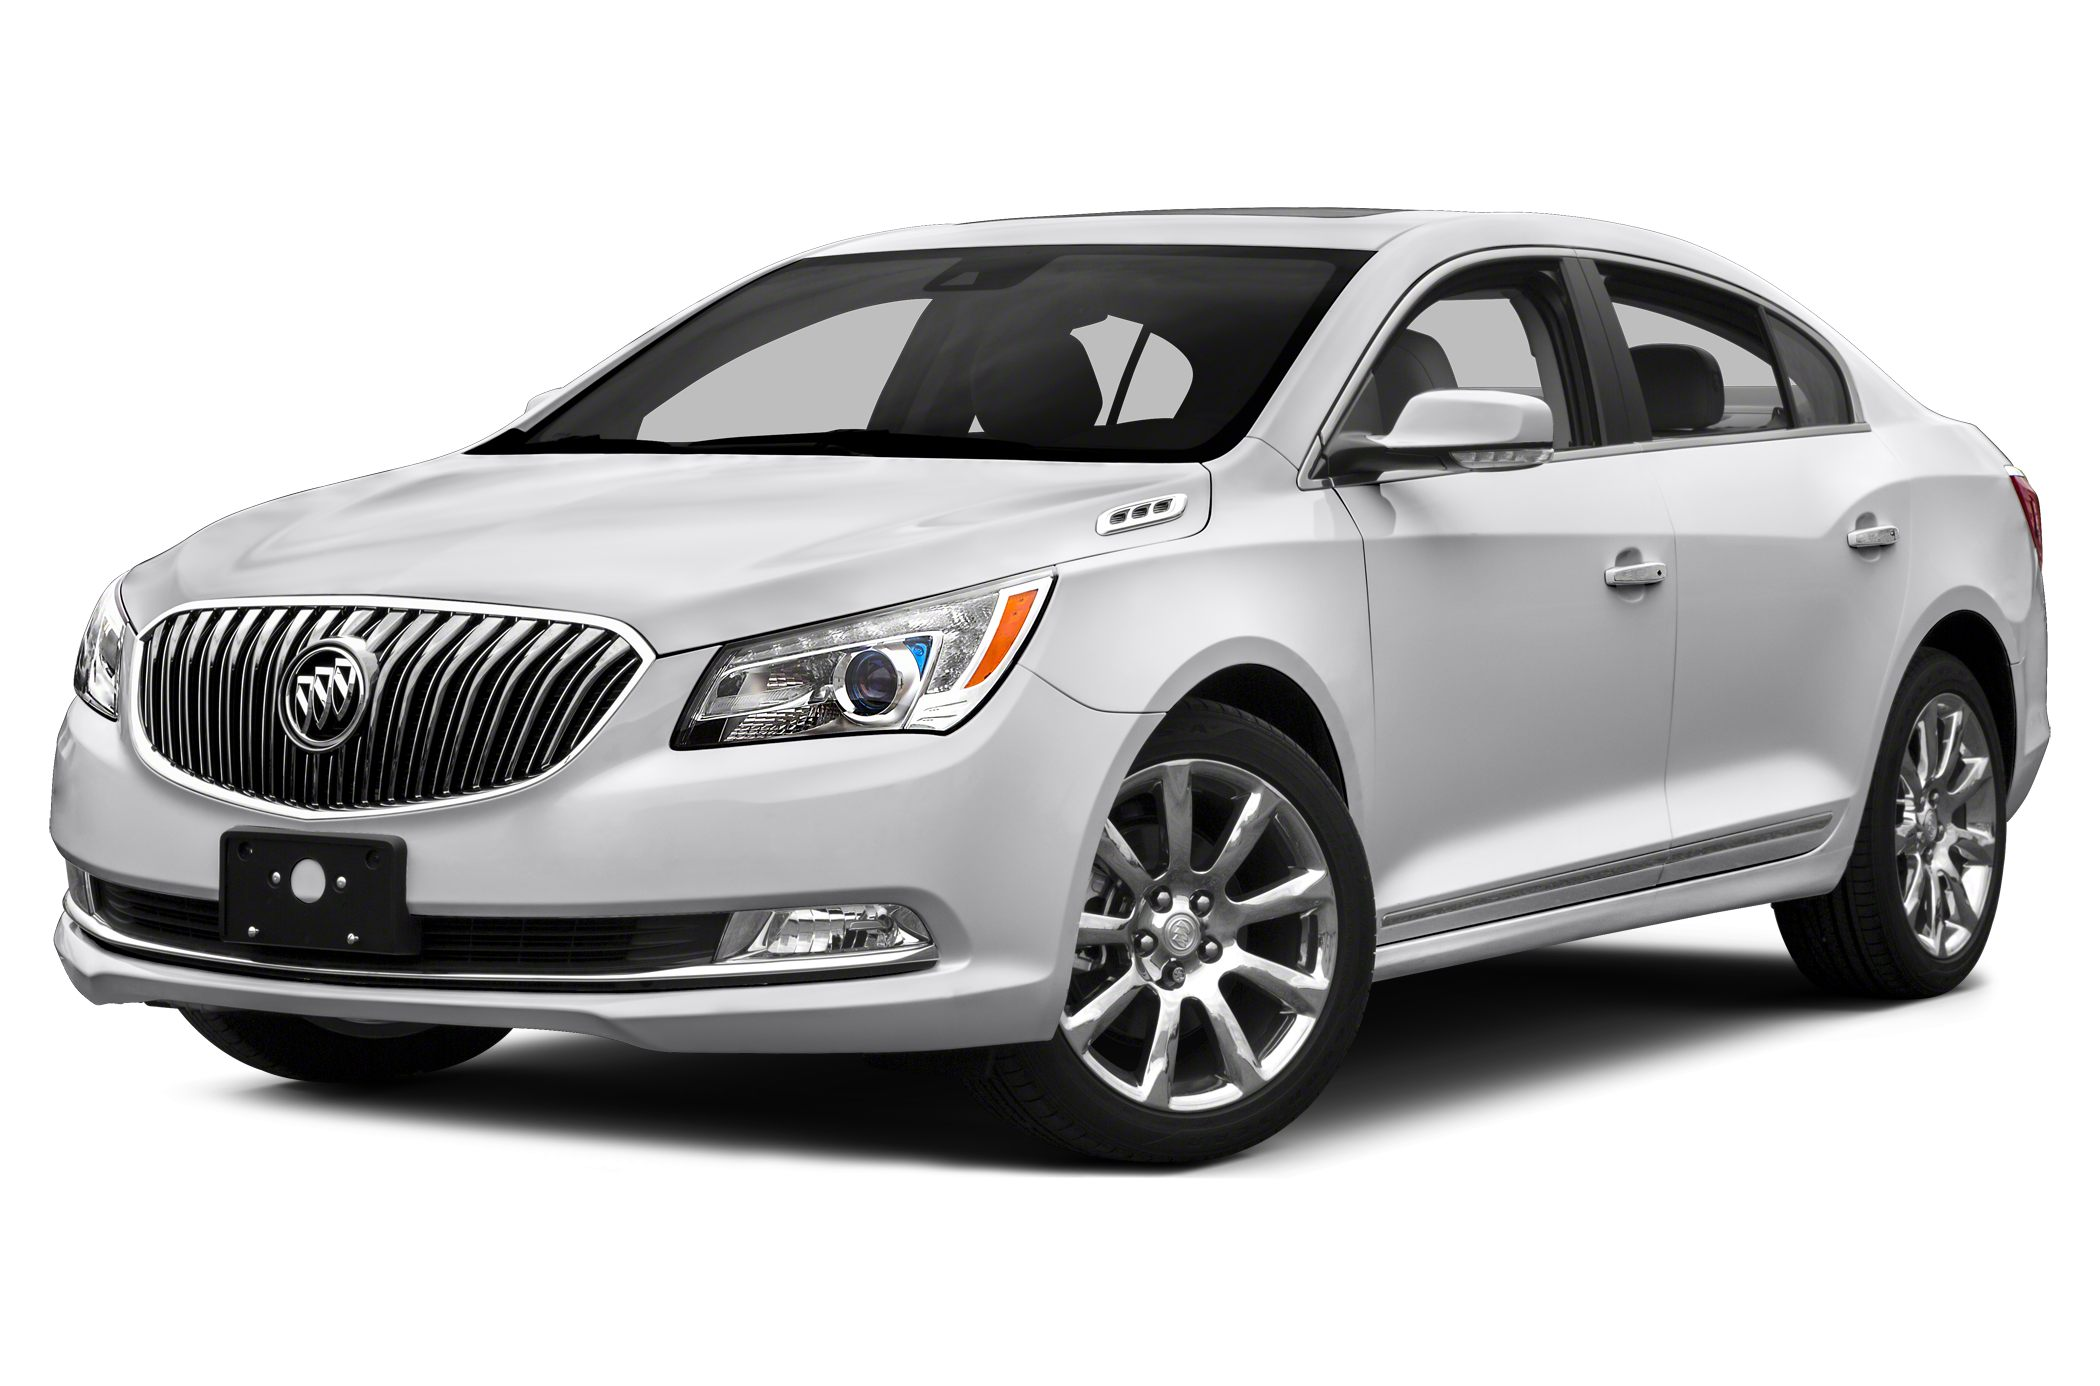 2008 Buick Lacrosse Super For Sale >> 2014 Buick LaCrosse Photo Gallery - Autoblog